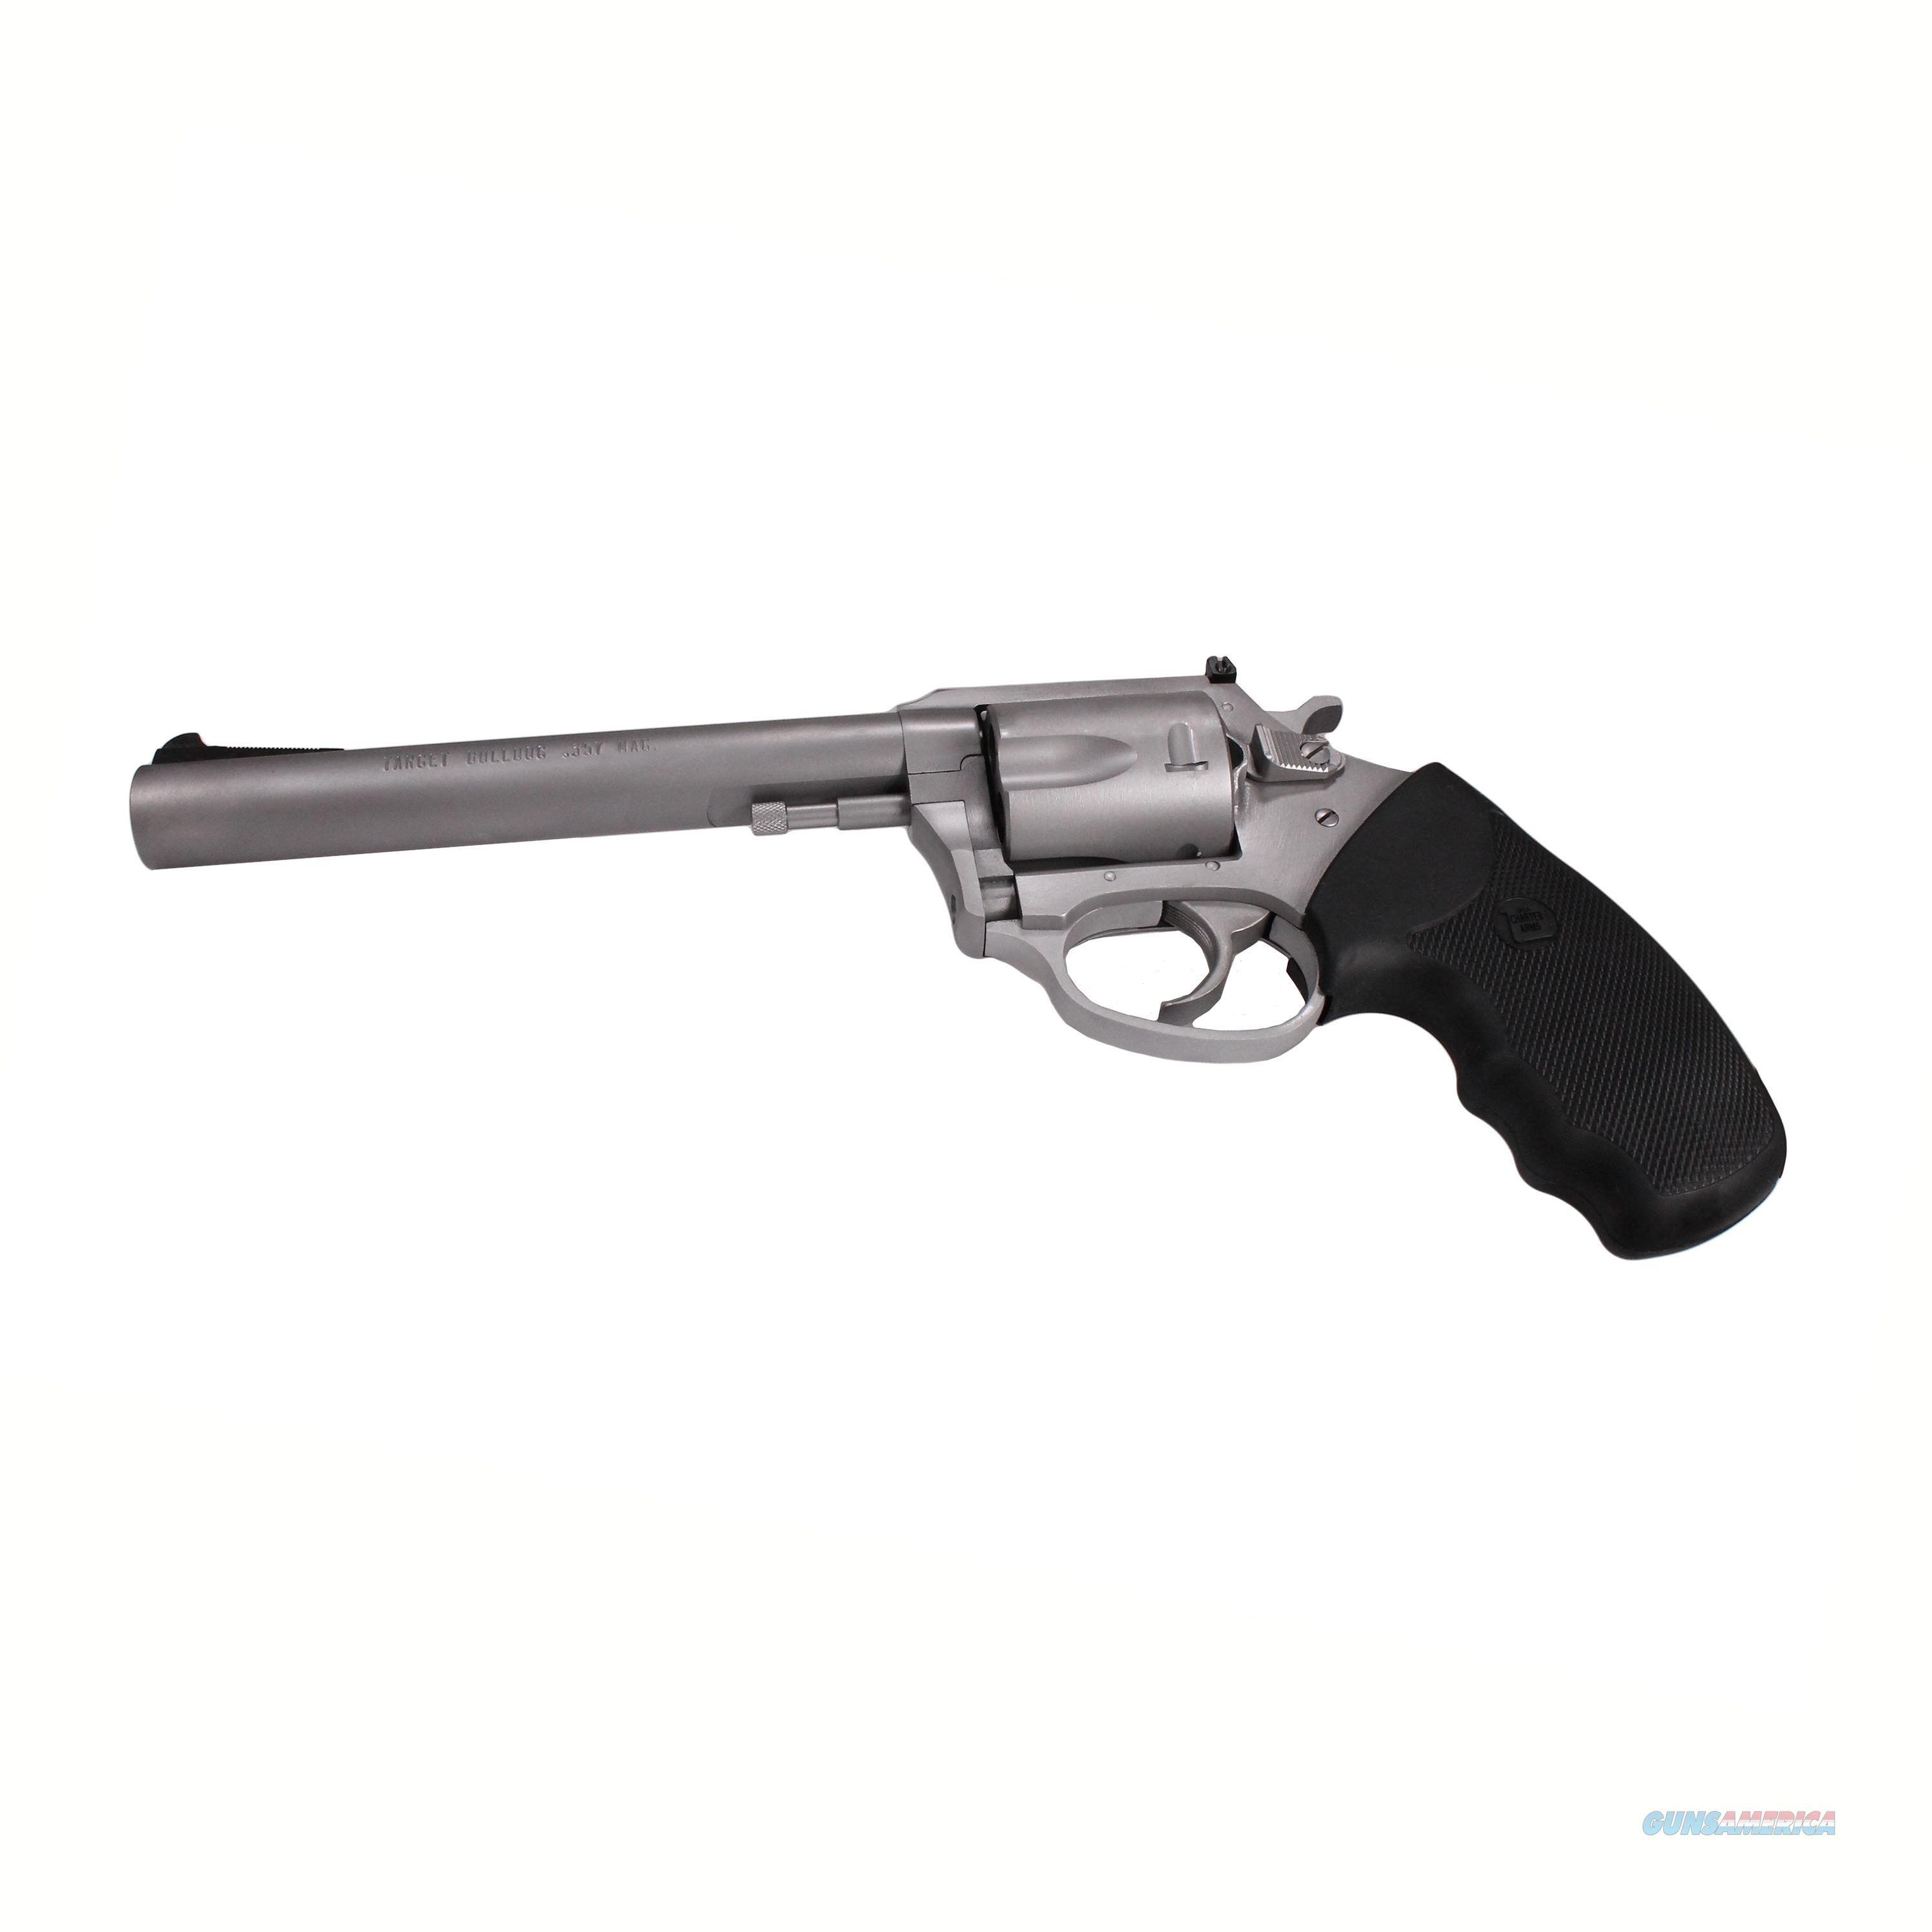 "Charter Arms Target Magnum, .357 Magnum, 6"" Barrel, 5 Rounds, Stainless Steel 73560  Guns > Pistols > C Misc Pistols"